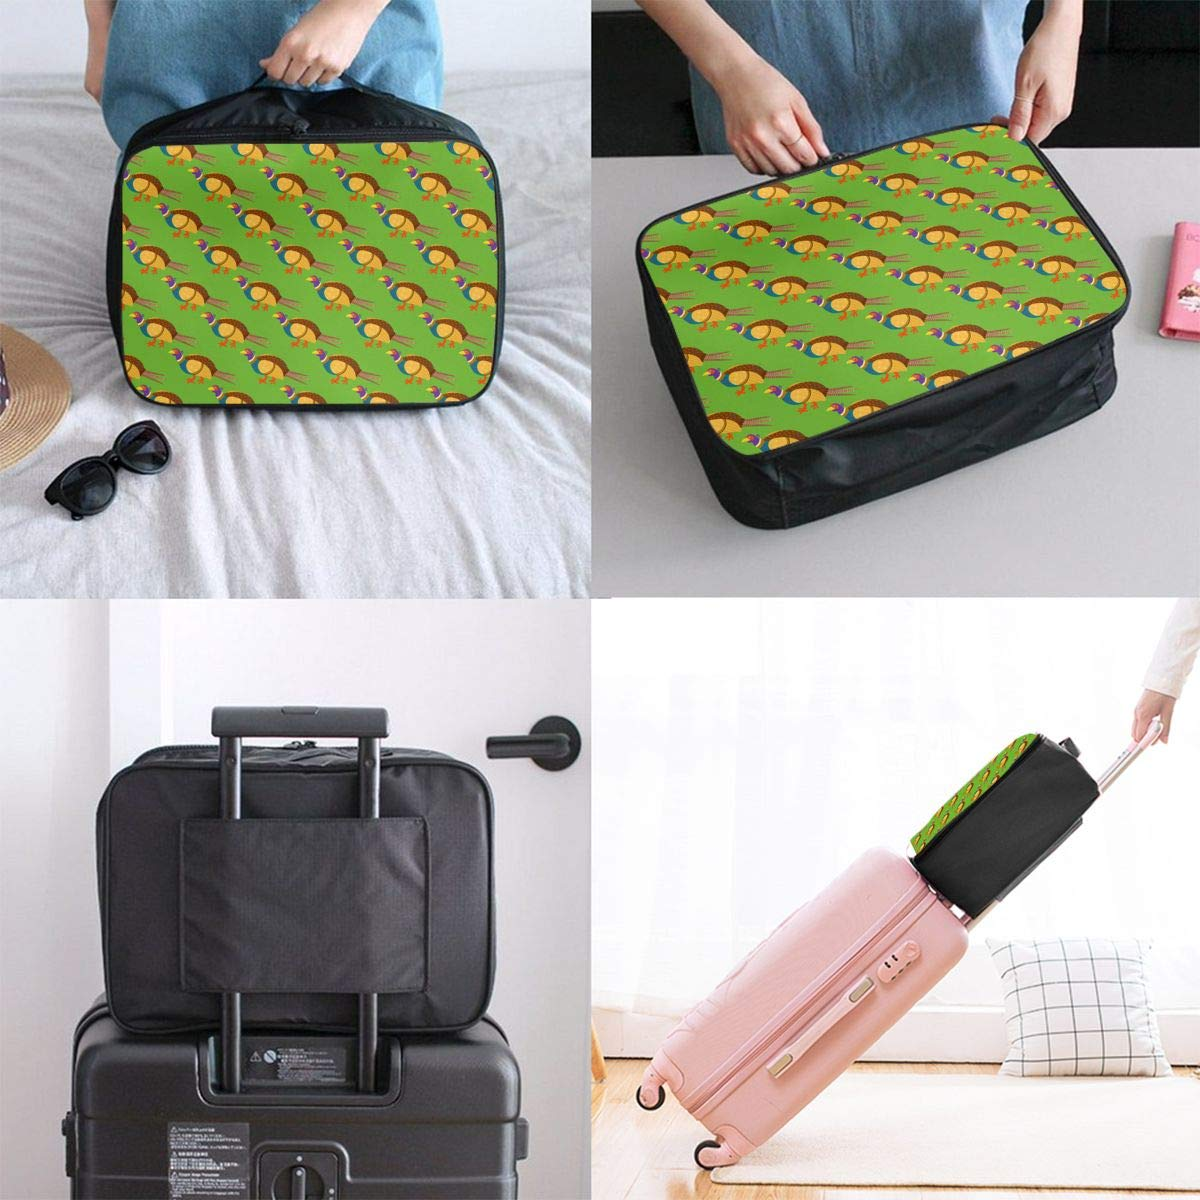 YueLJB Colorful Pheasants Pattern Lightweight Large Capacity Portable Luggage Bag Travel Duffel Bag Storage Carry Luggage Duffle Tote Bag